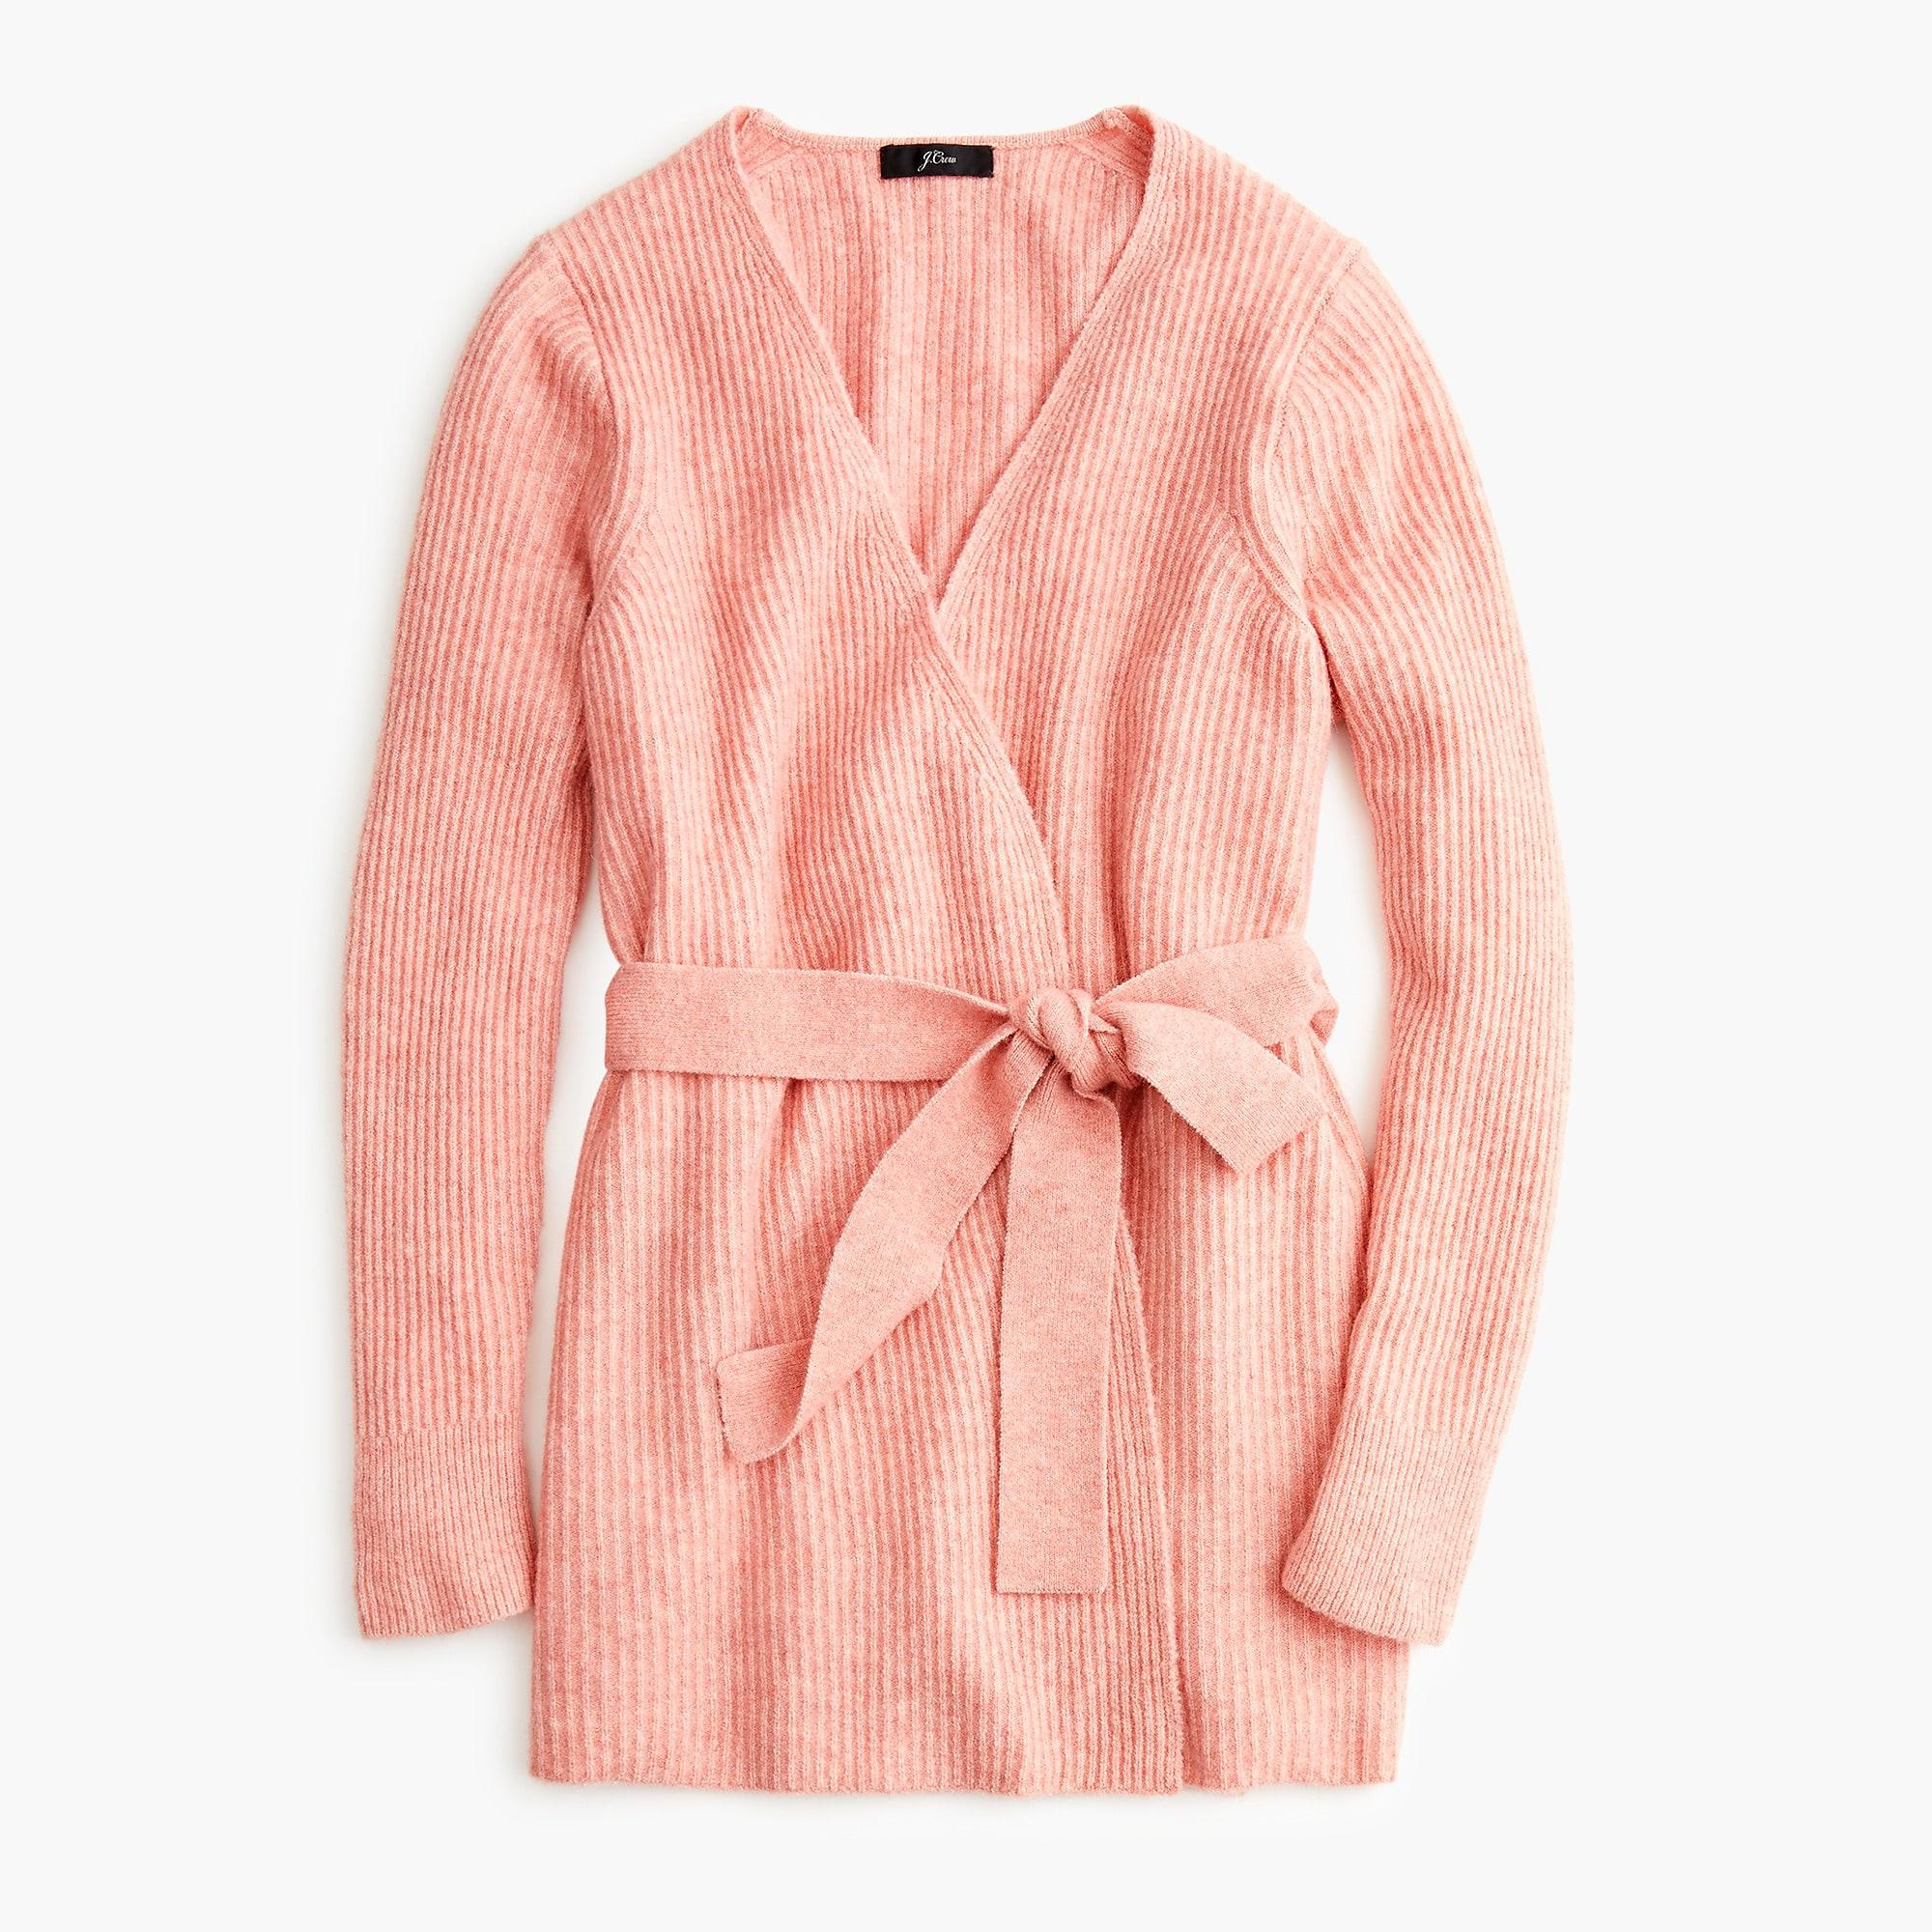 b07499feaa2 J.Crew Wrap Cardigan In Supersoft Yarn in Pink - Lyst